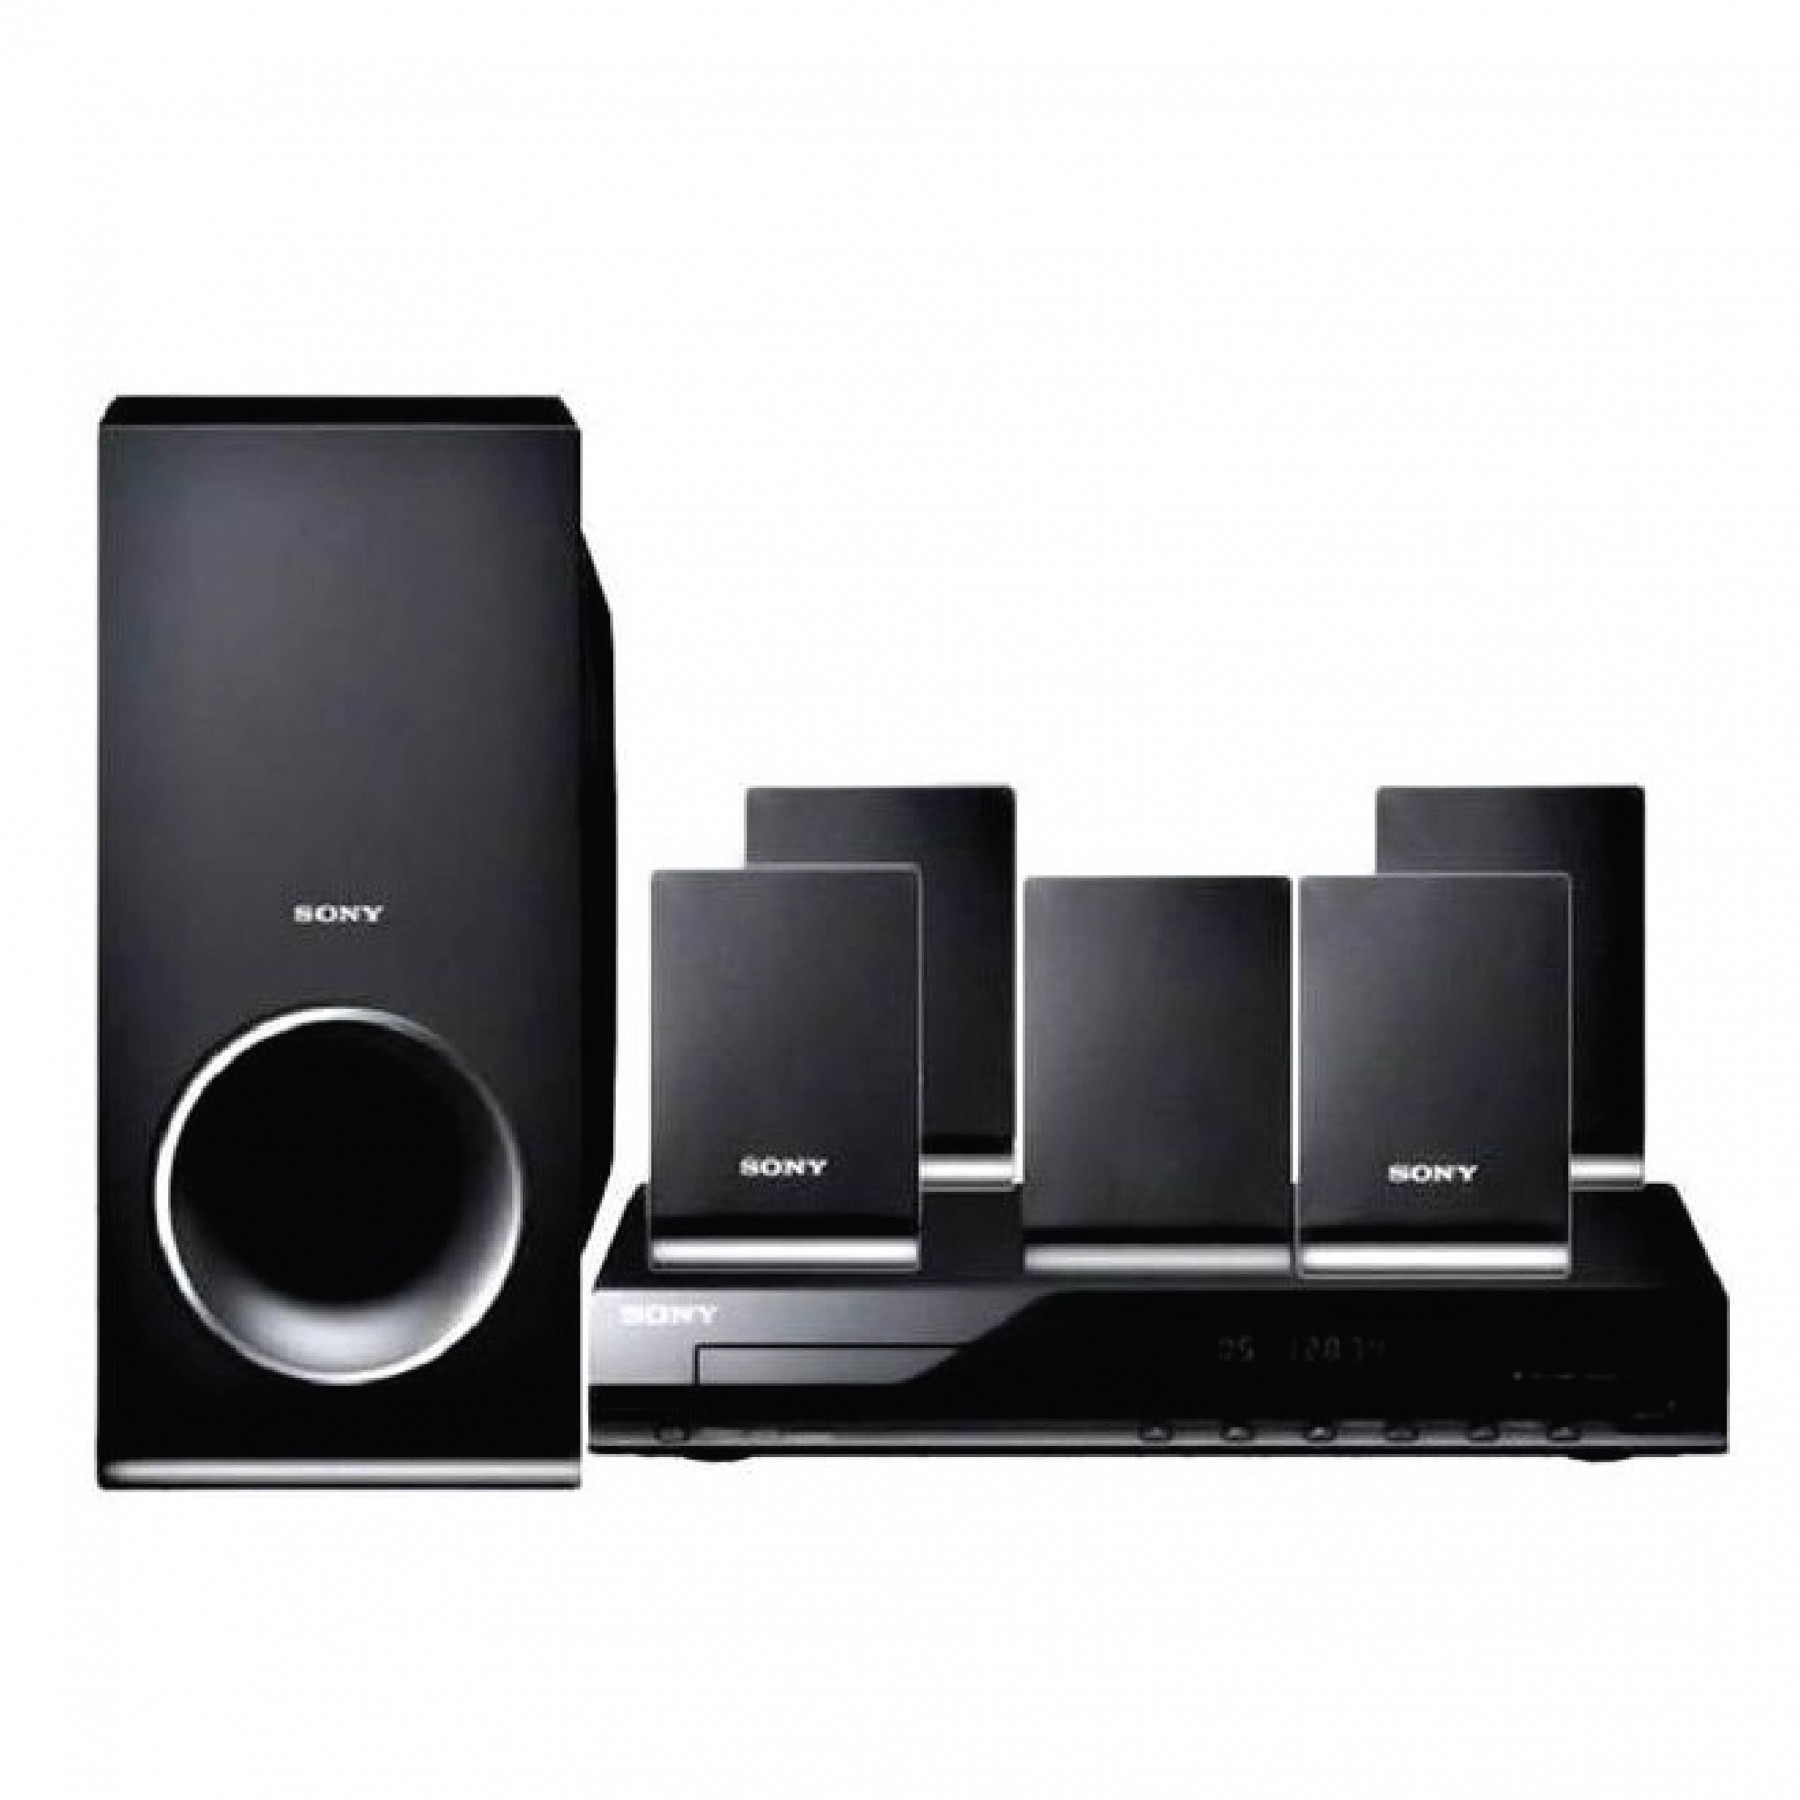 Sony Home Theater 300 W Rms Usb Home Theatres Home Audio Video Tv Audio Electronics Abed Tahan